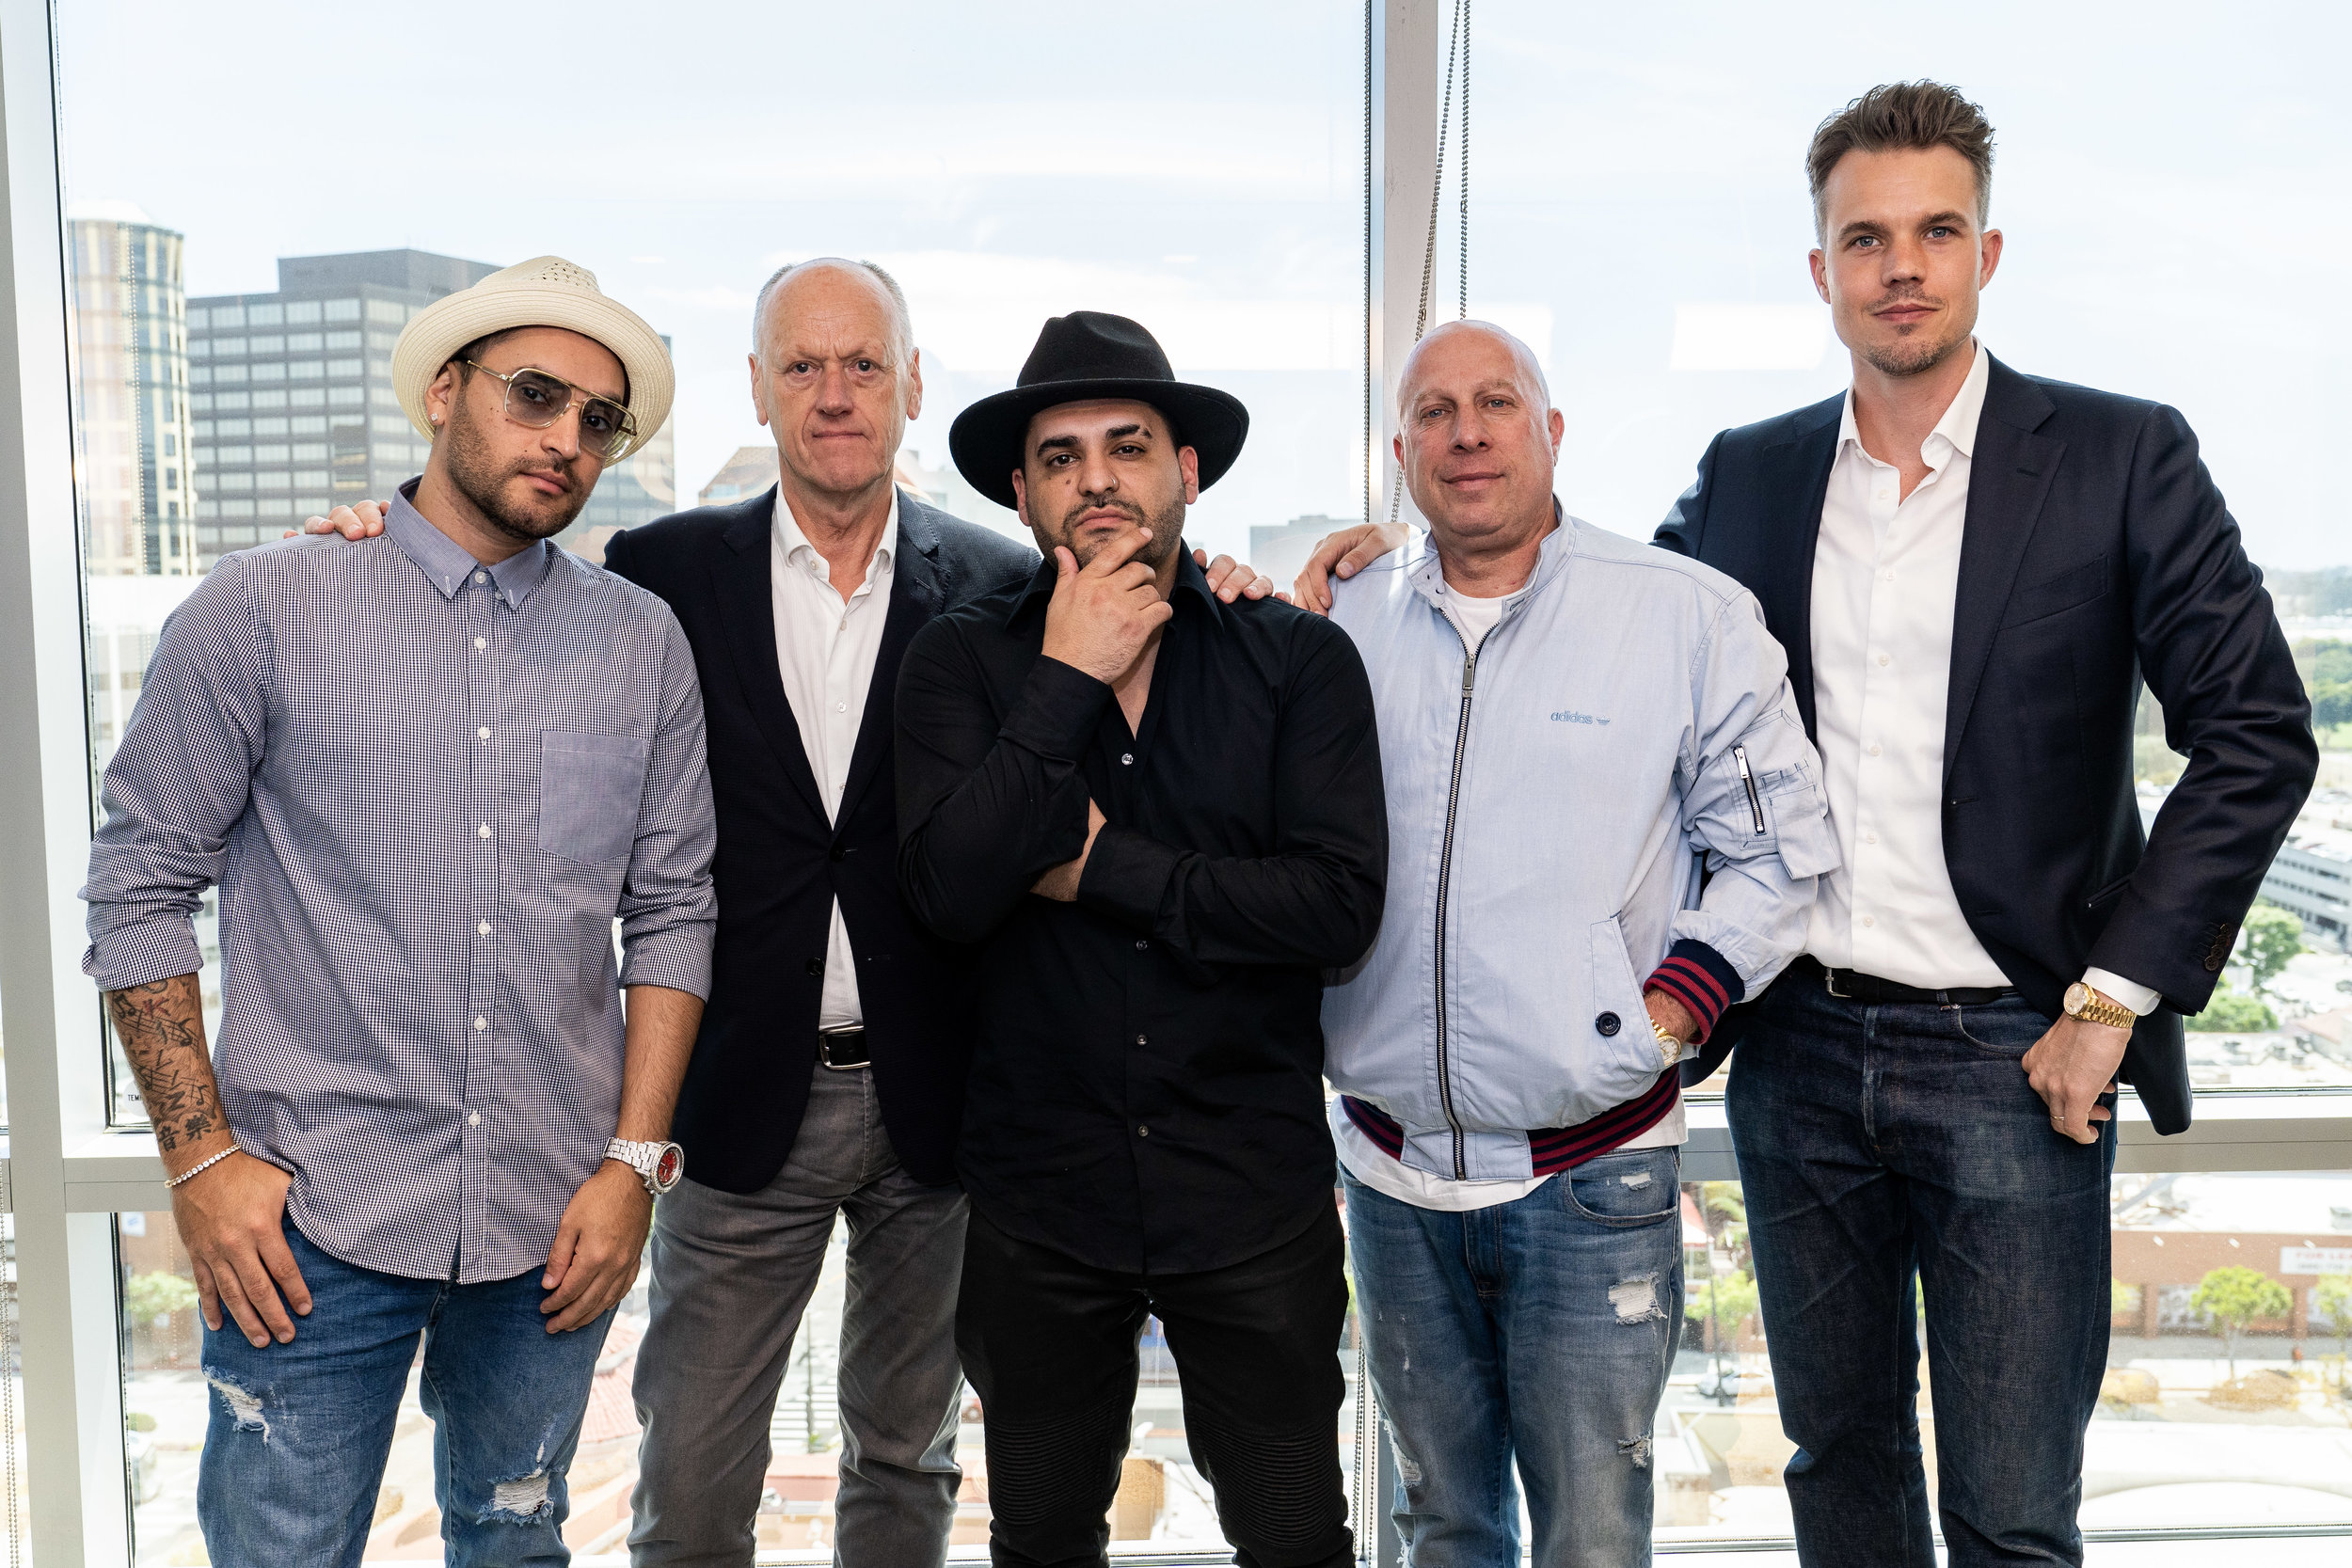 Pictured from left to right:  Oscar Salinas (Play-N-Skillz/Creative Director-CTM Latin), André de Raaff (CEO-CTM), Juan Salinas (Play-N-Skillz/Creative Director-CTM Latin), Steve Lobel and Thomas Deelder (Creative Director-CTM Los Angeles)